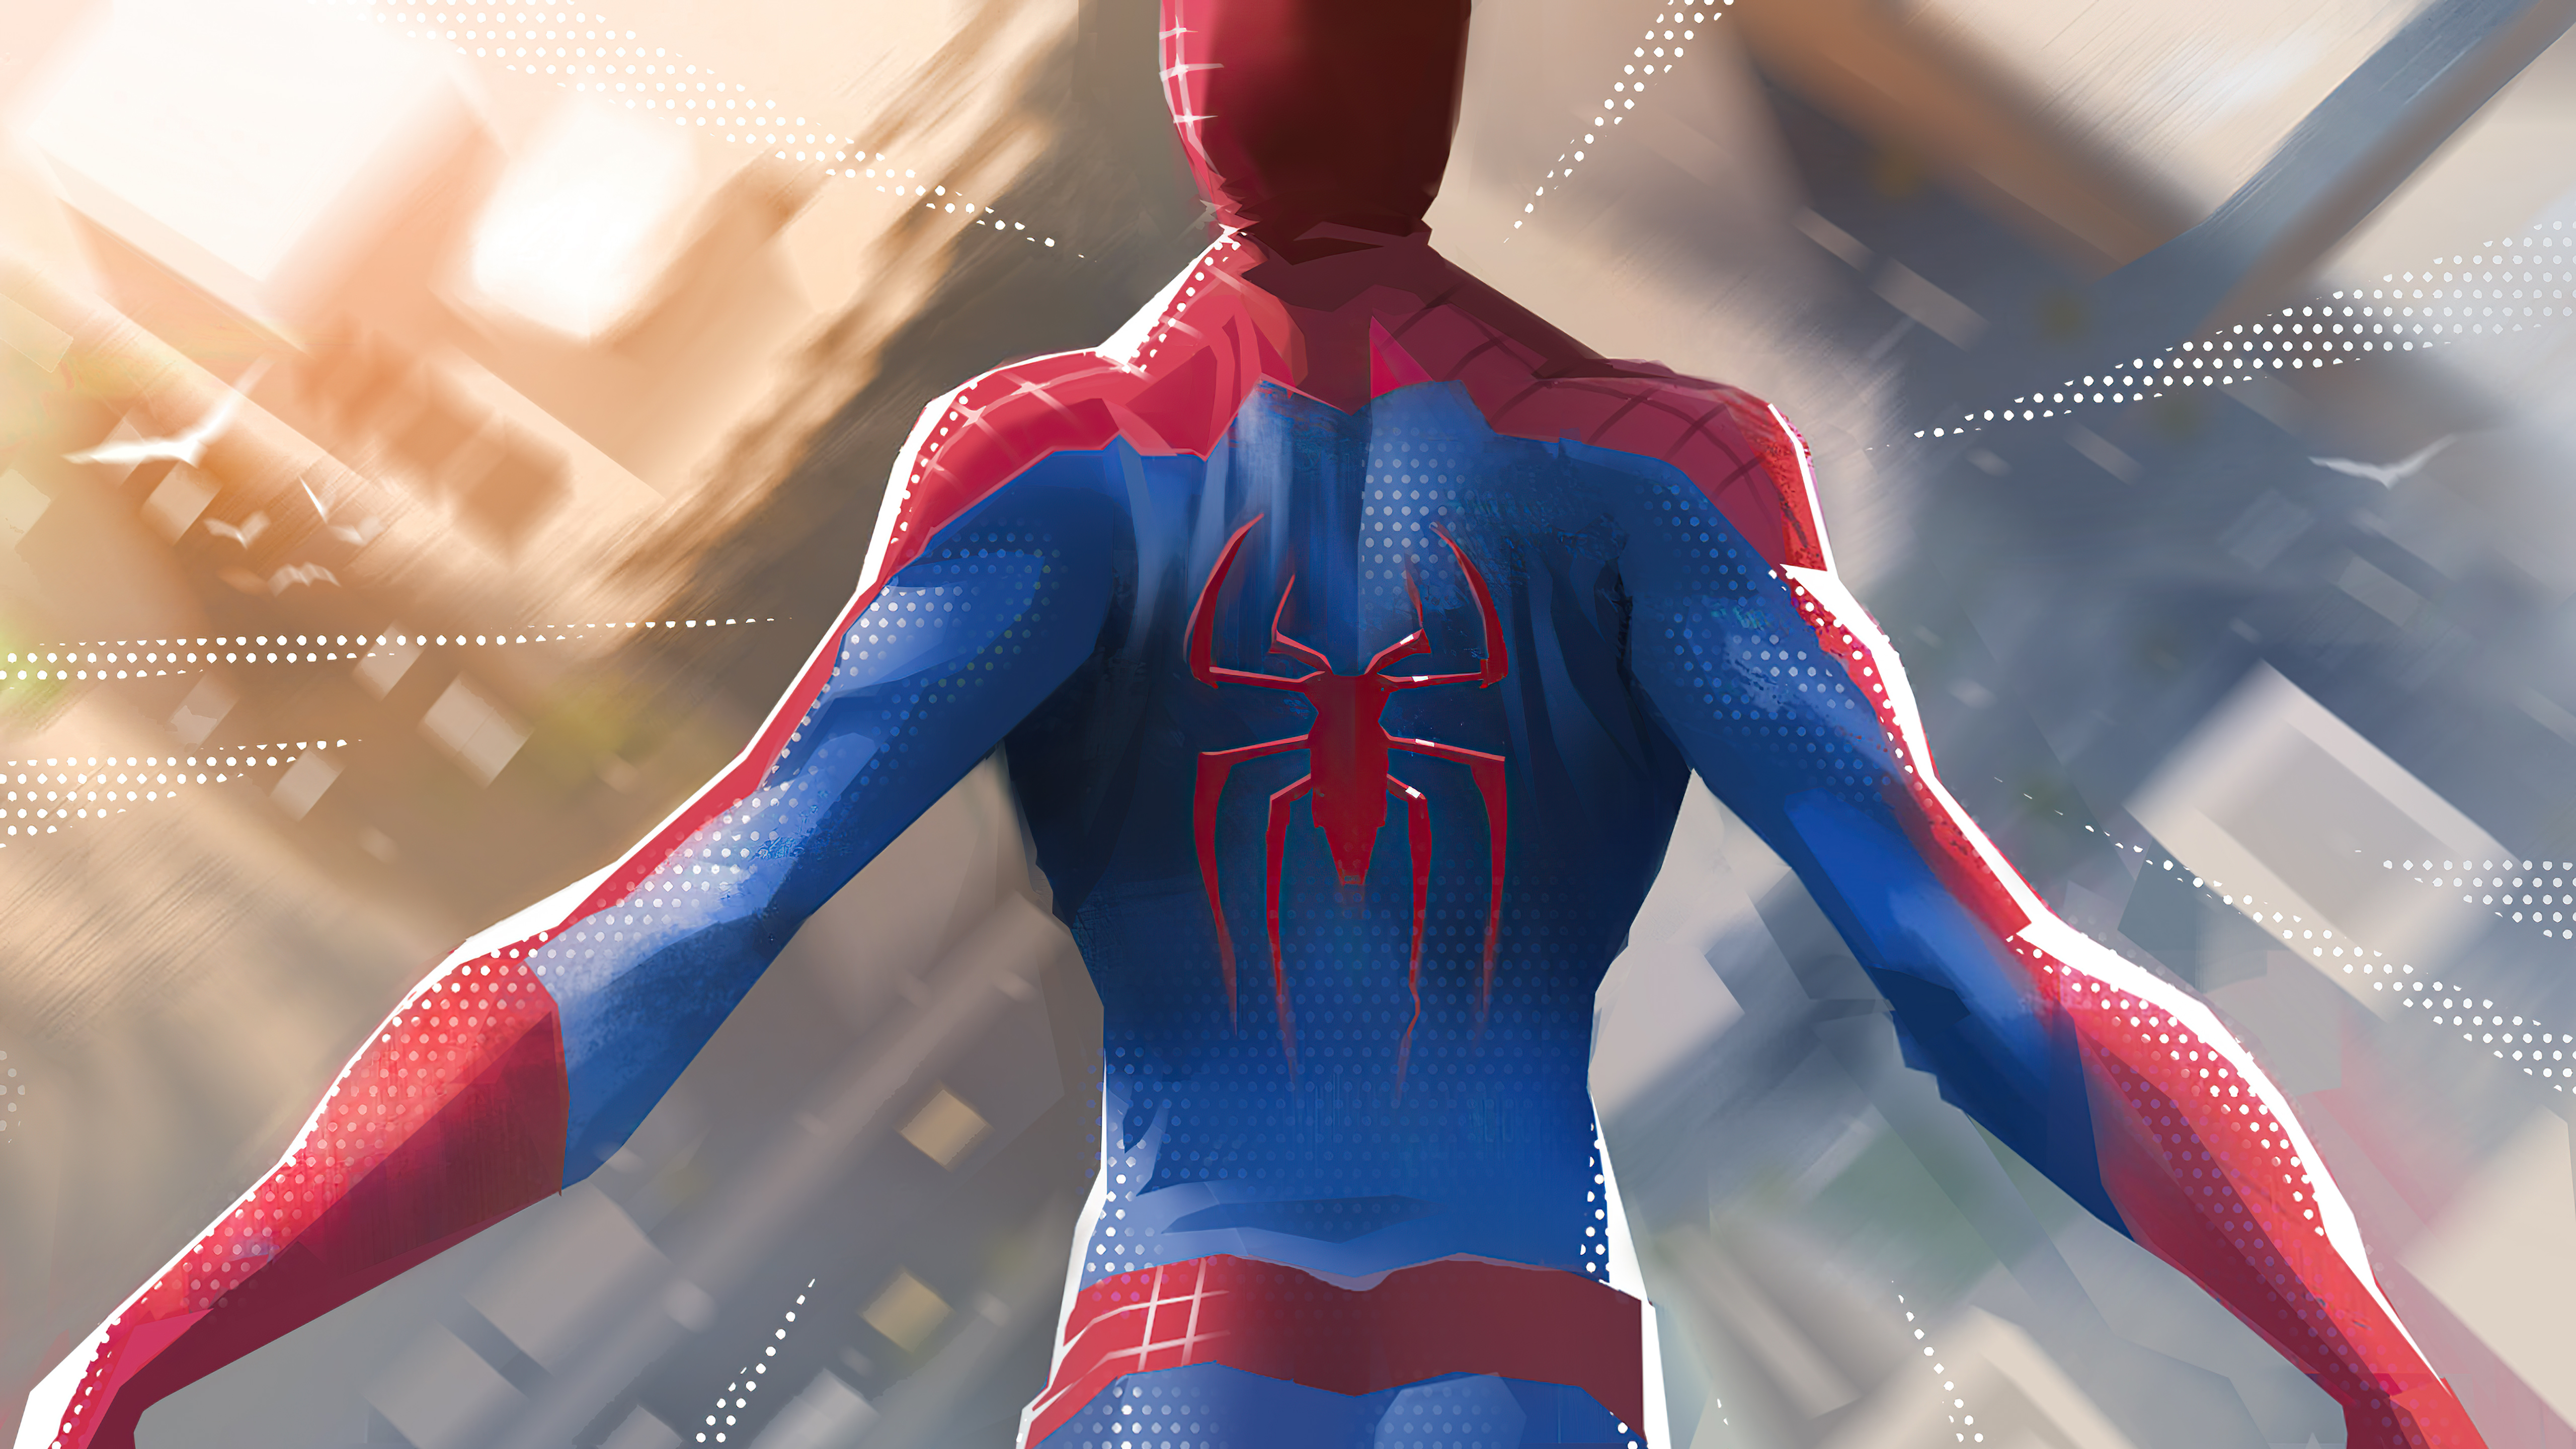 Wallpaper Spiderman jumping out of buildings